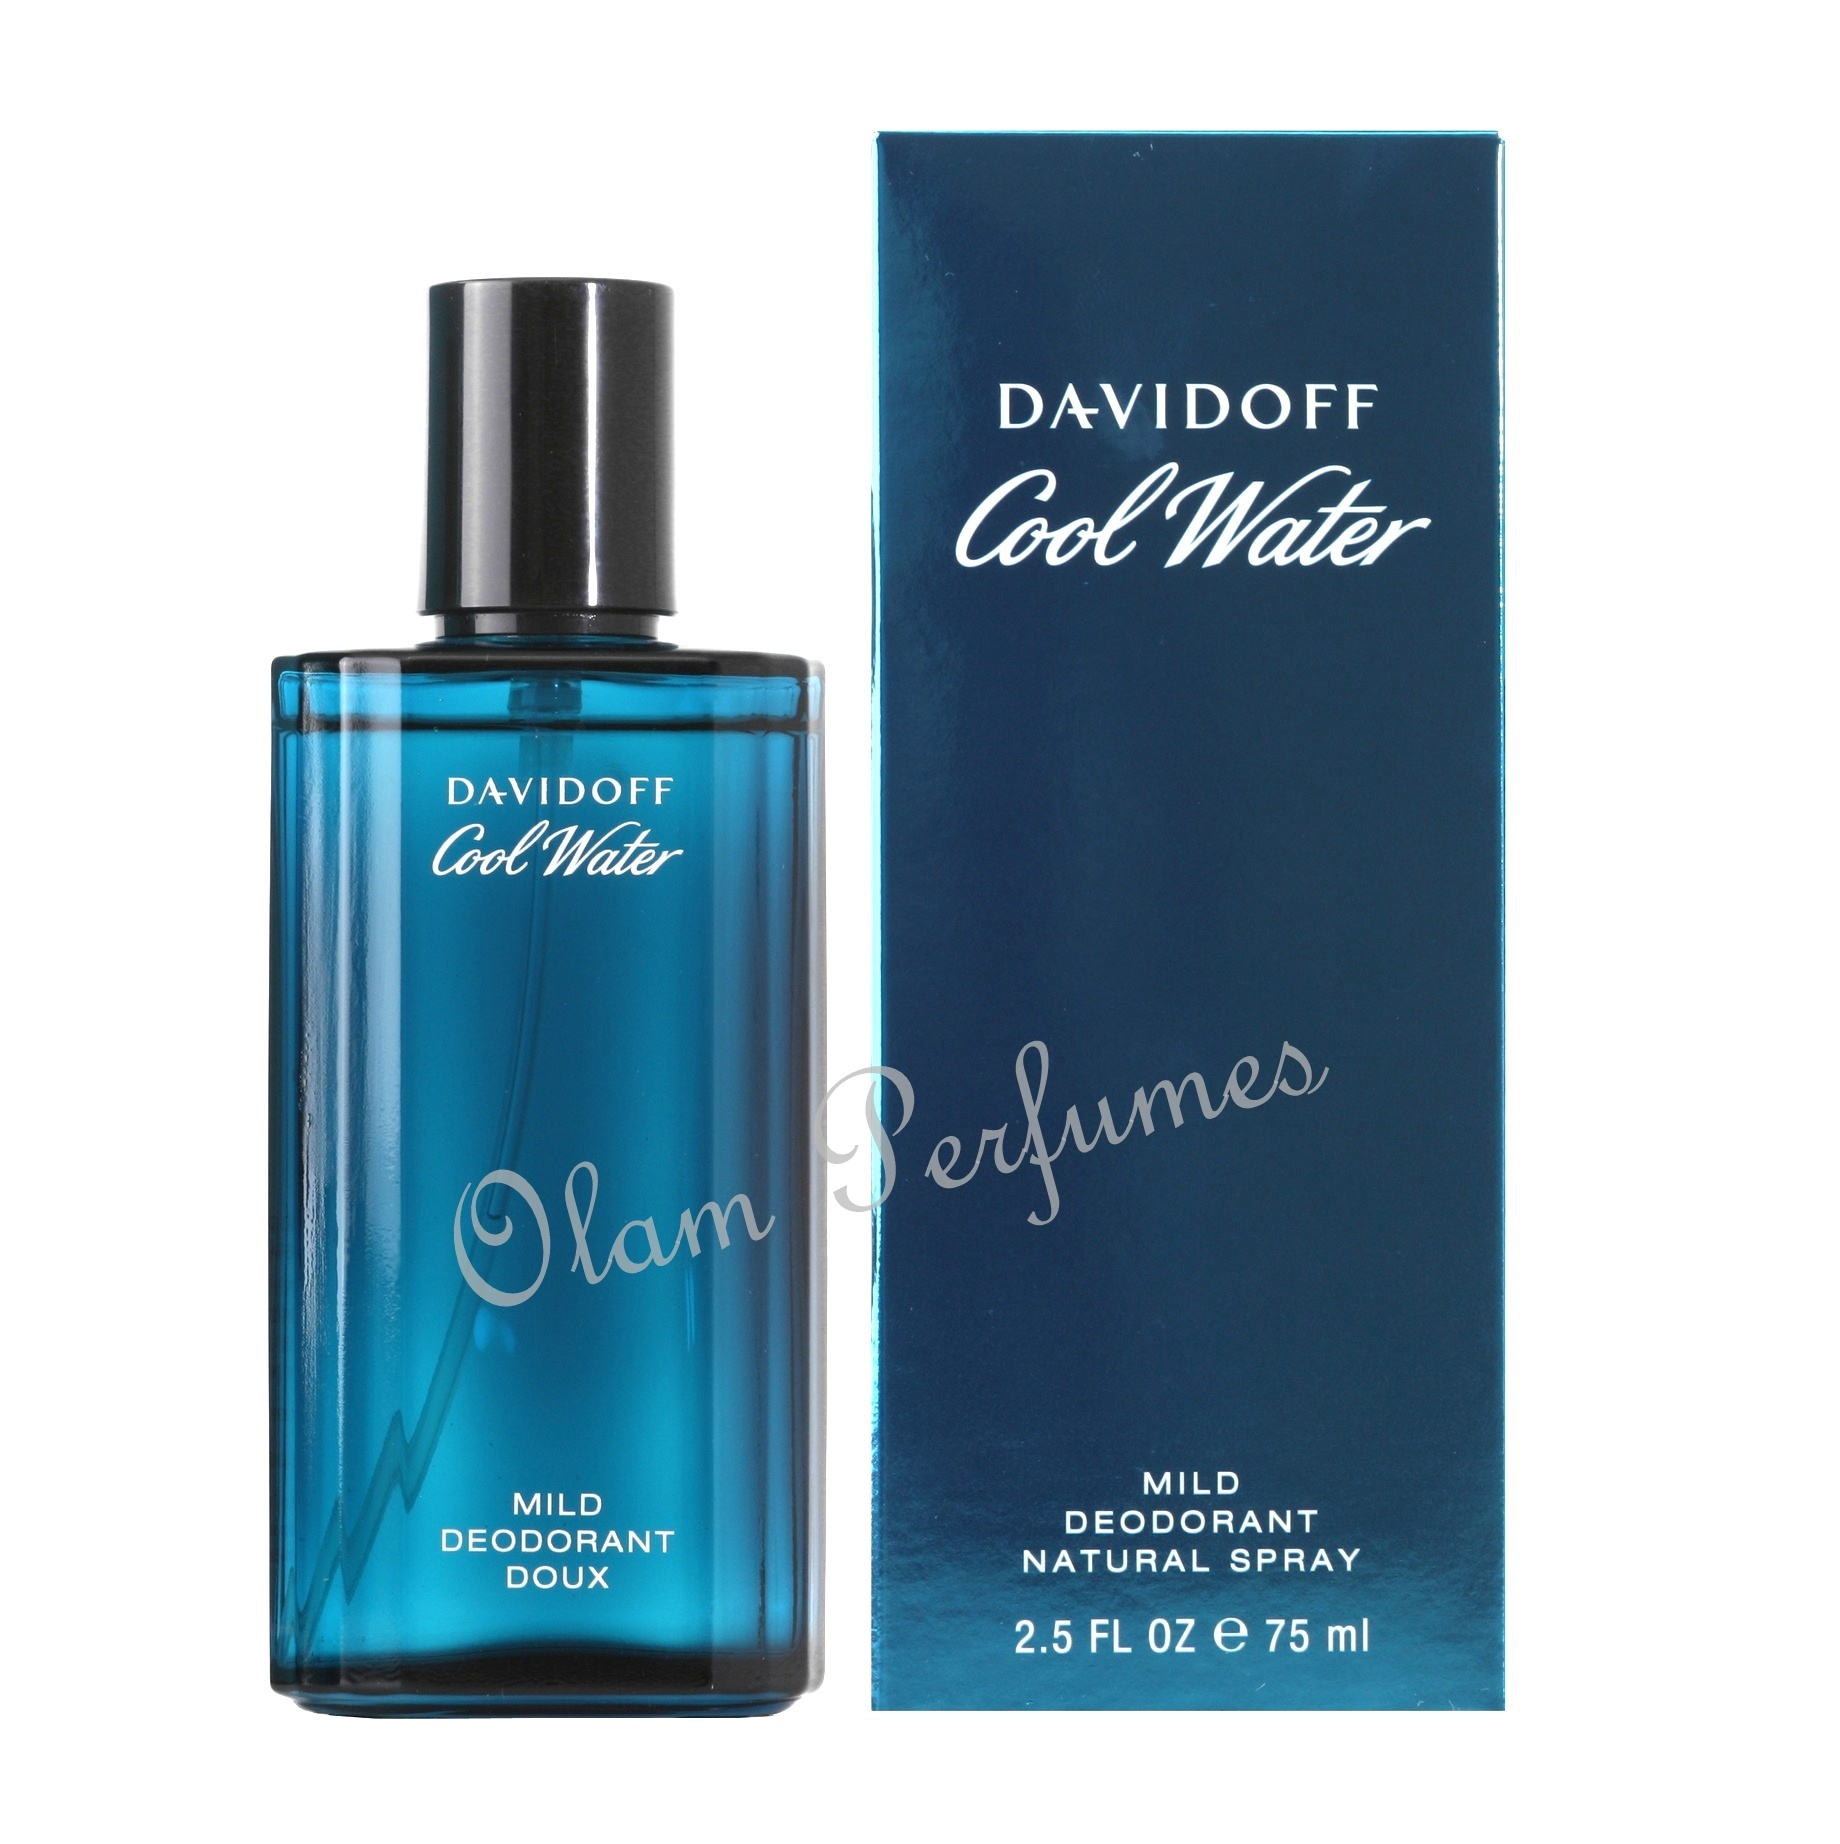 Davidoff Cool Water For Men Mild Deodorant Spray 2.5oz 75ml